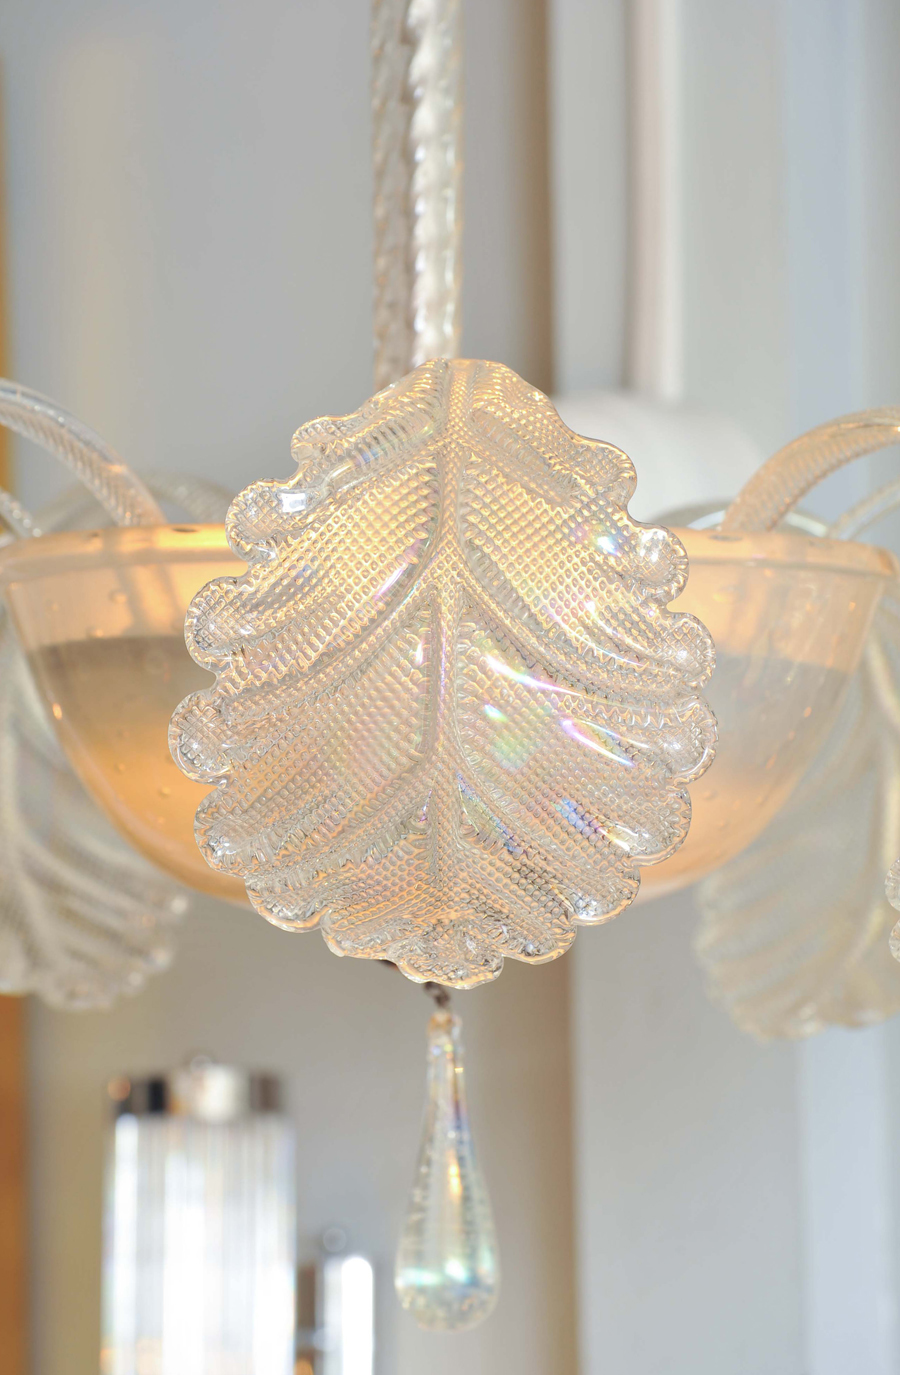 Valerie Wade Lc580 1950S Glass Chandelier Barovier E Toso 06